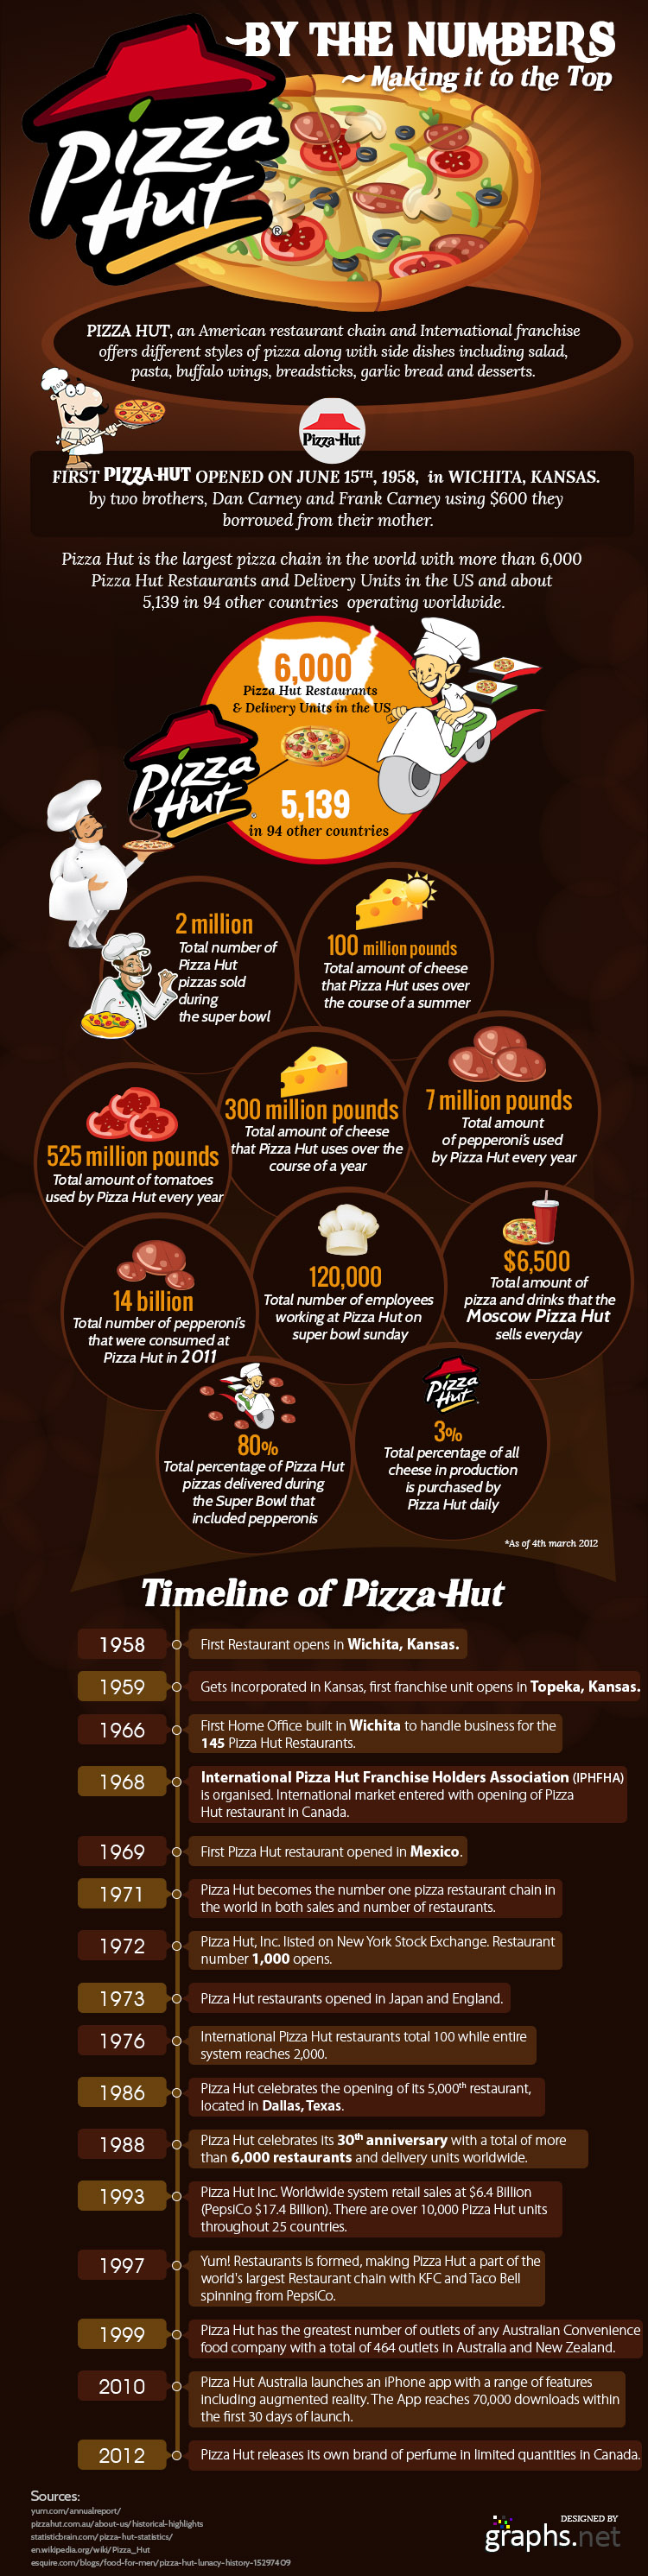 Pizza Hut The Brand Equation